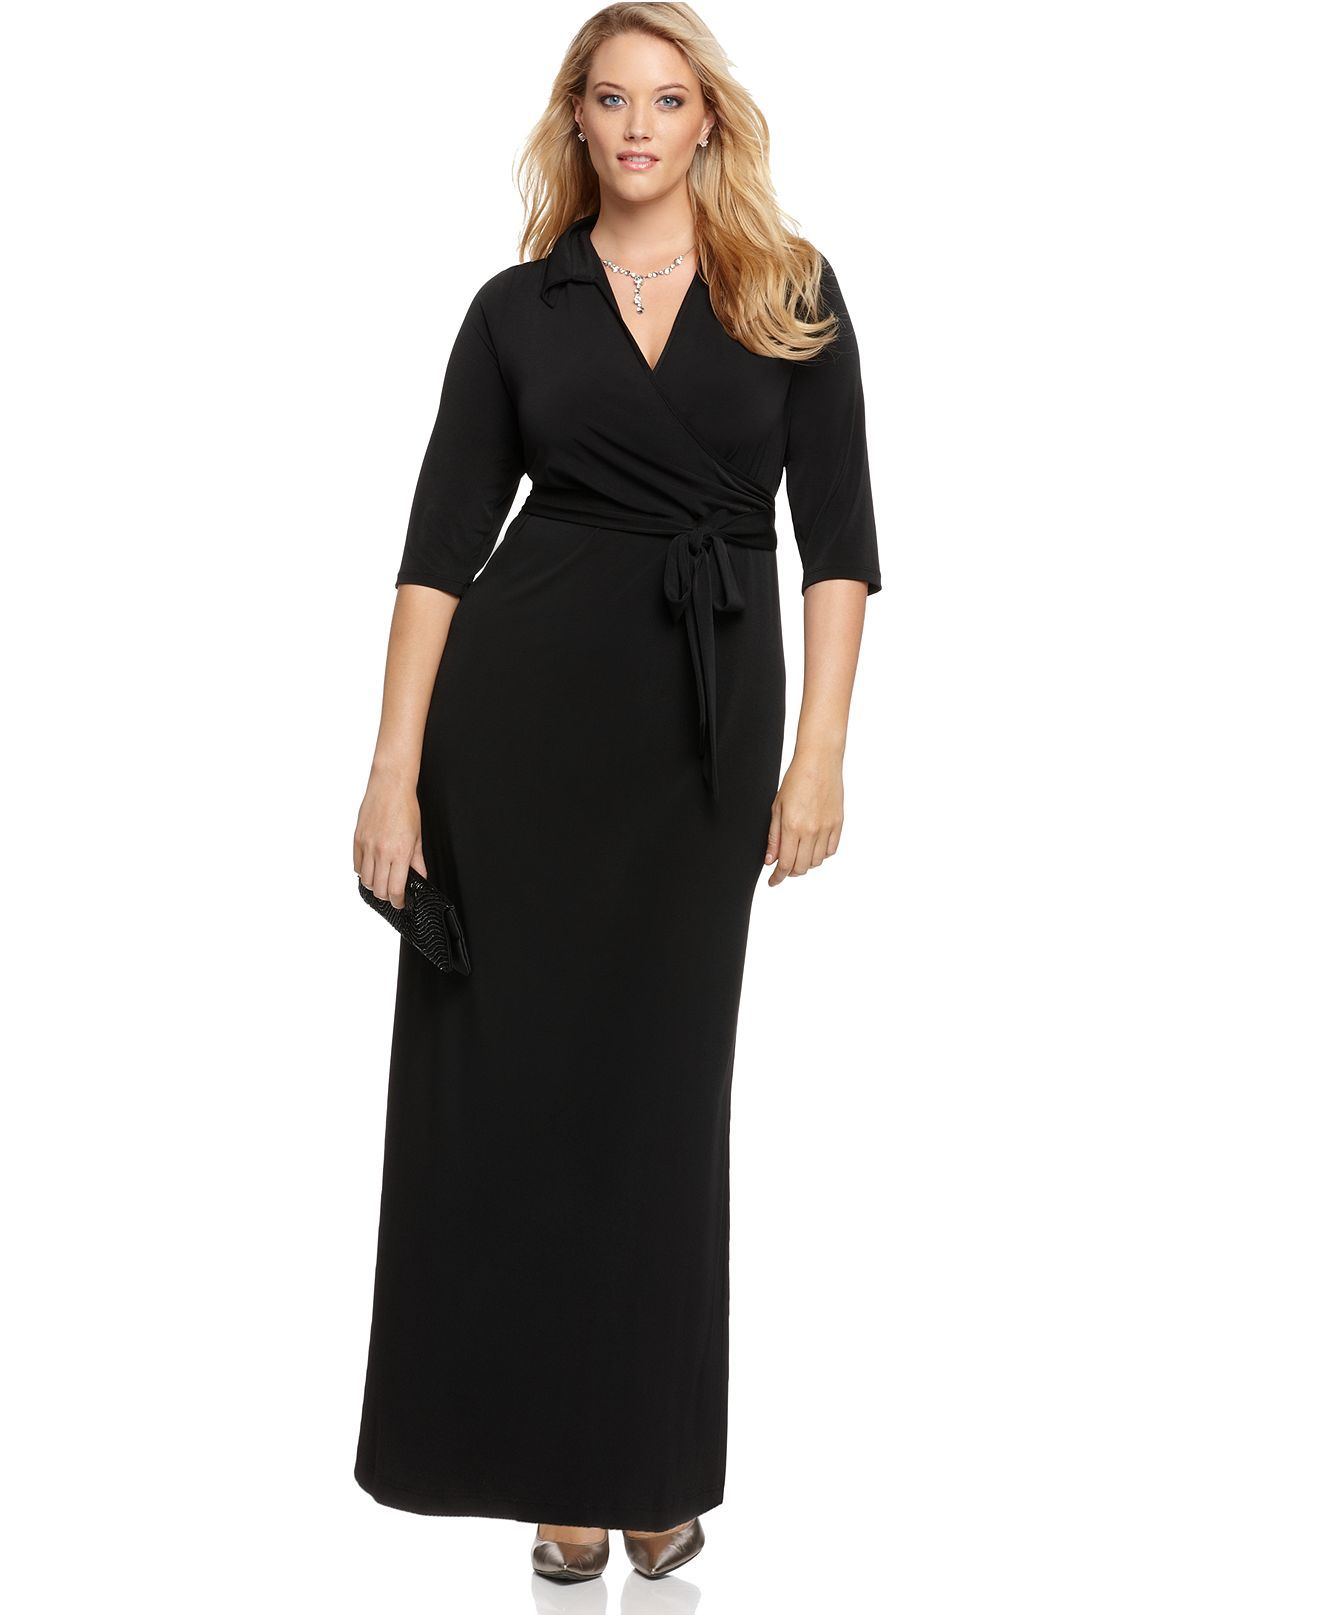 8b391431bd32a NY Collection Plus Size Faux-Wrap Maxi Dress - Plus Size Dresses - Plus  Sizes - Macy s. Cheaper!